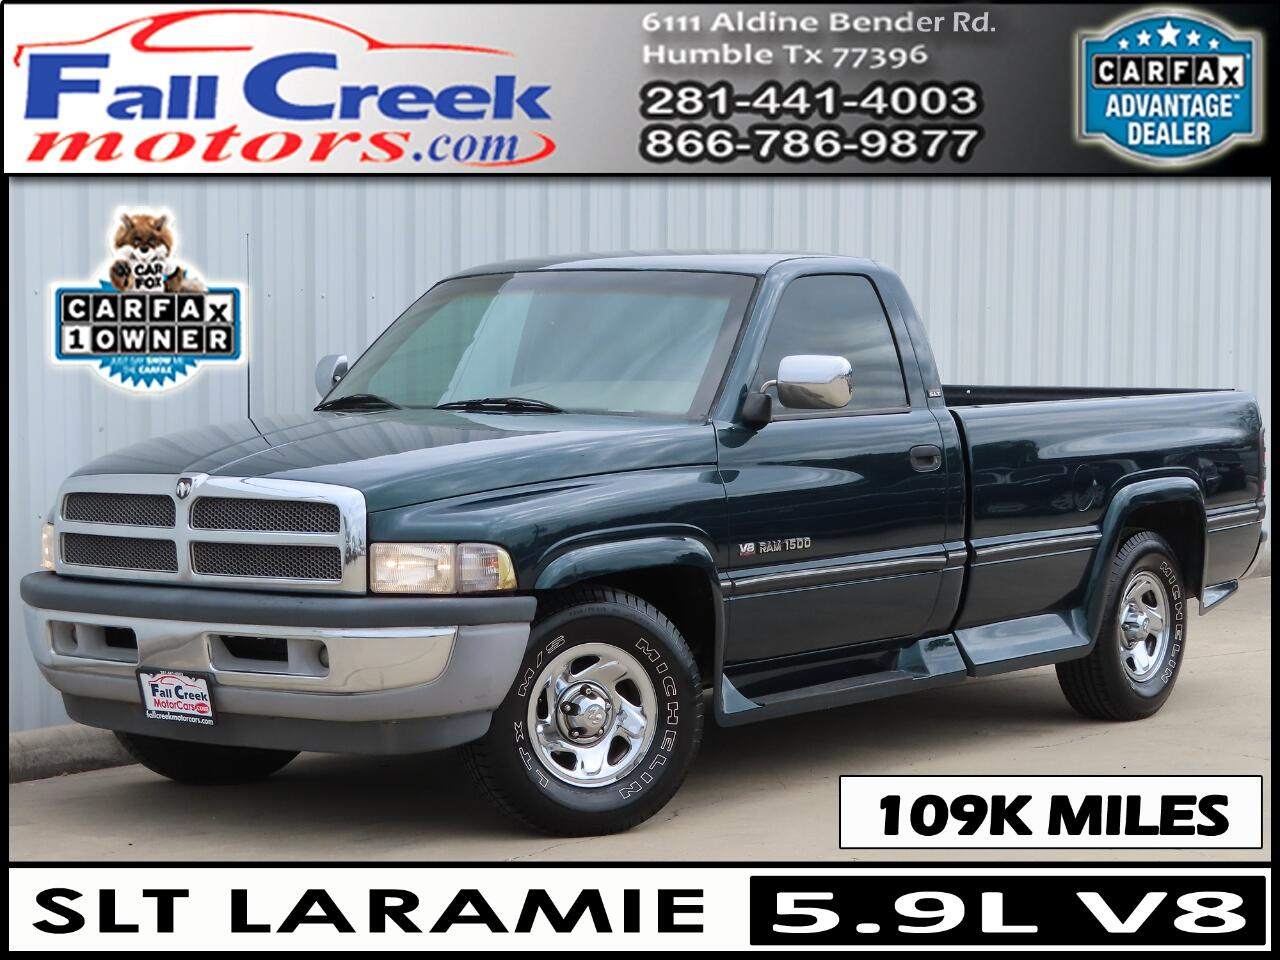 1994 Dodge Ram 1500 LARAMIE SLT REGULAR CAB